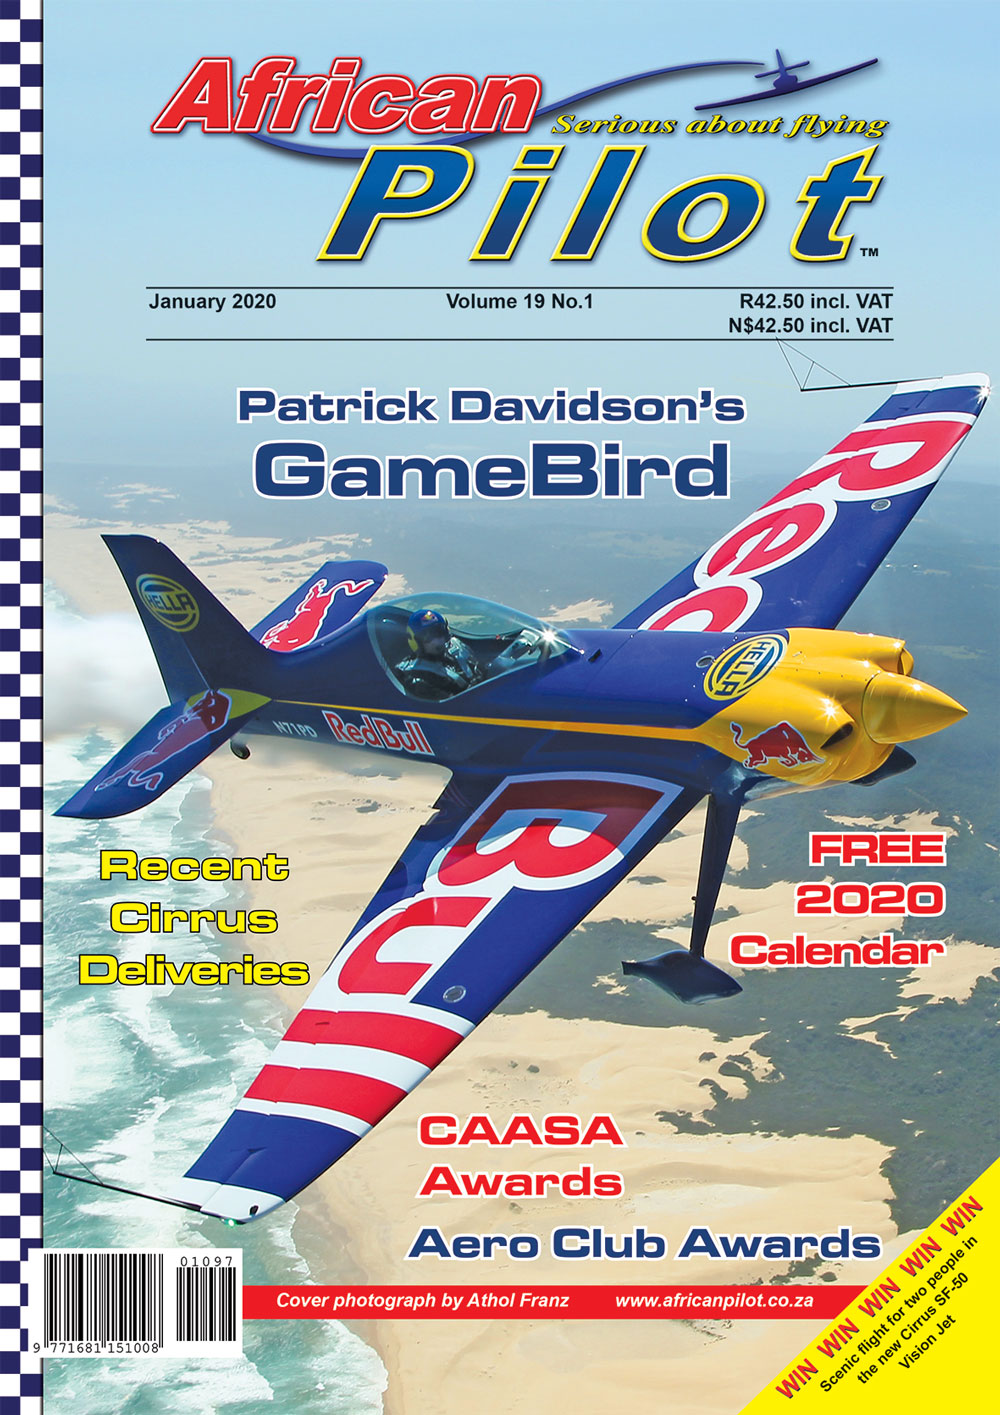 African Pilot January 2020 cover